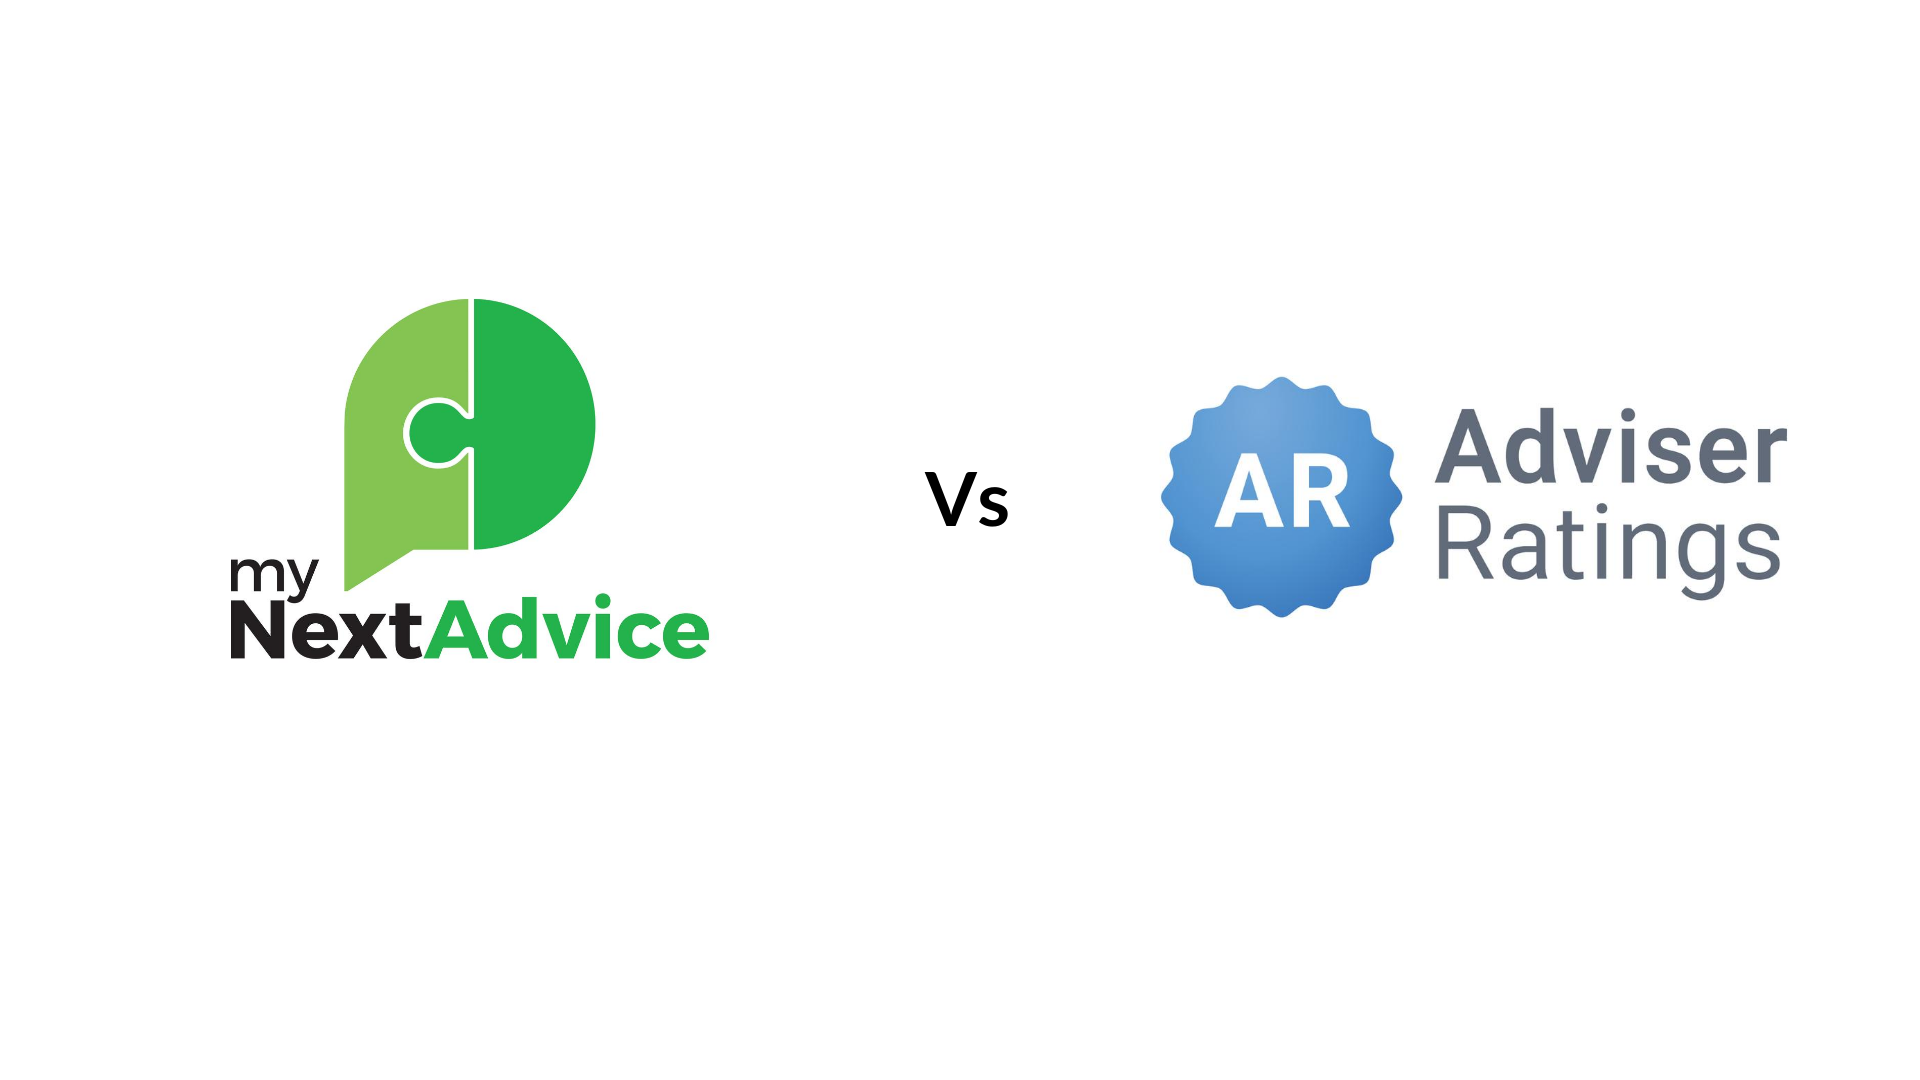 MyNextAdvice Vs AdviserRatings